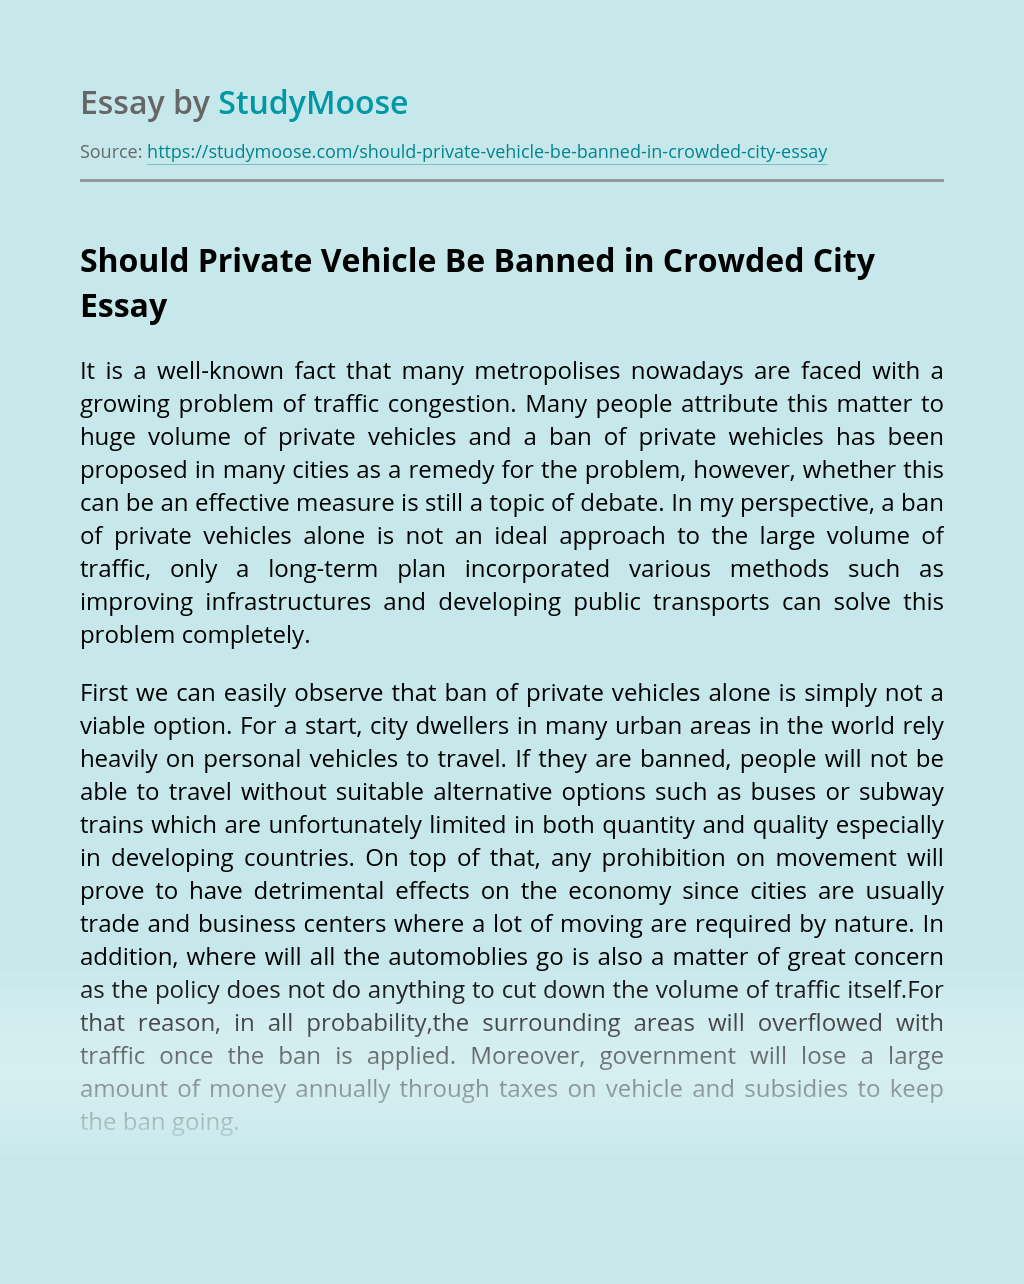 Should Private Vehicle Be Banned in Crowded City